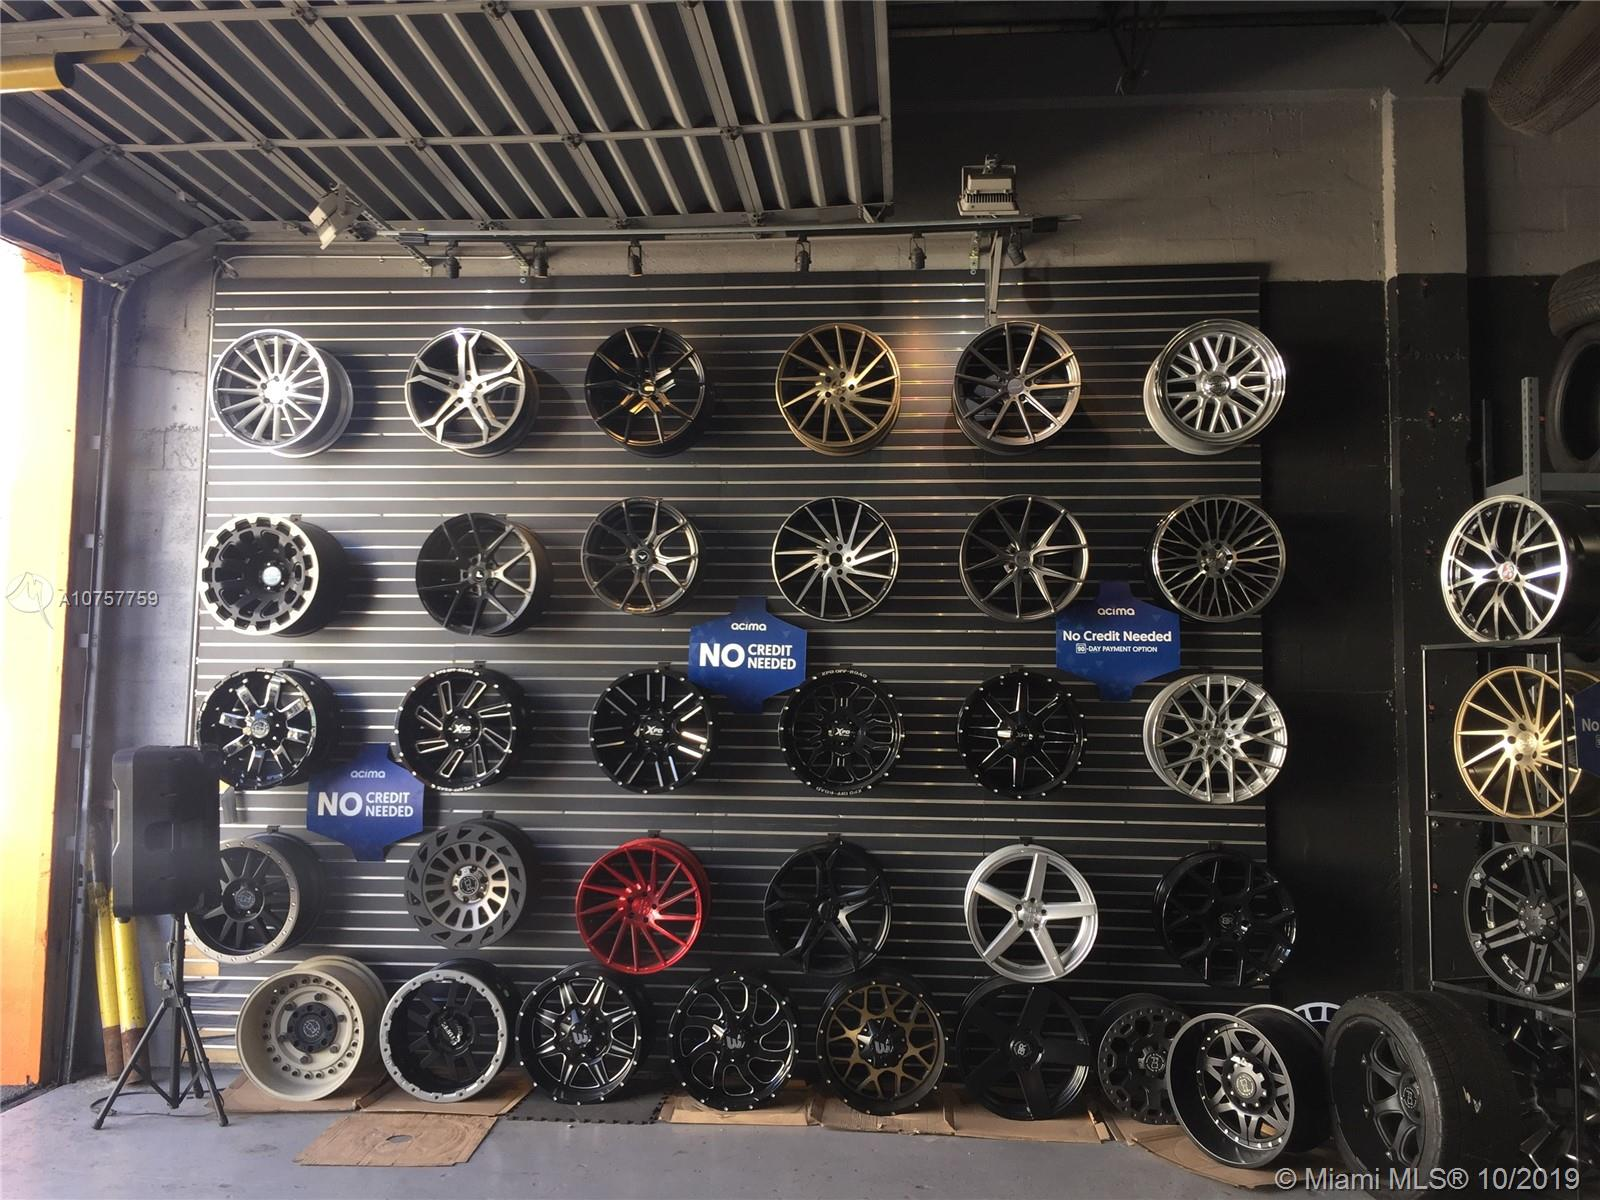 Wheel and Tire Shop, Incredible location in one of the busiest streets in Hialeah the 72 Street, Business open from Monday to Saturday. Excellent opportunity for a new mechanic or E2 Visa. License and all equipment is included on the sale. Only $3500 of monthly Rent. All the Inventory, tools and, 2009 Dodge Ram Pick up are included, Tire Changers, Lift, Wheel Balancer, Brake Lathes, Wheel Aligners, Wheel Weights. Tire Repair, and The place has, a fully Equipped office and, camera system,and two bathroom. Only Business